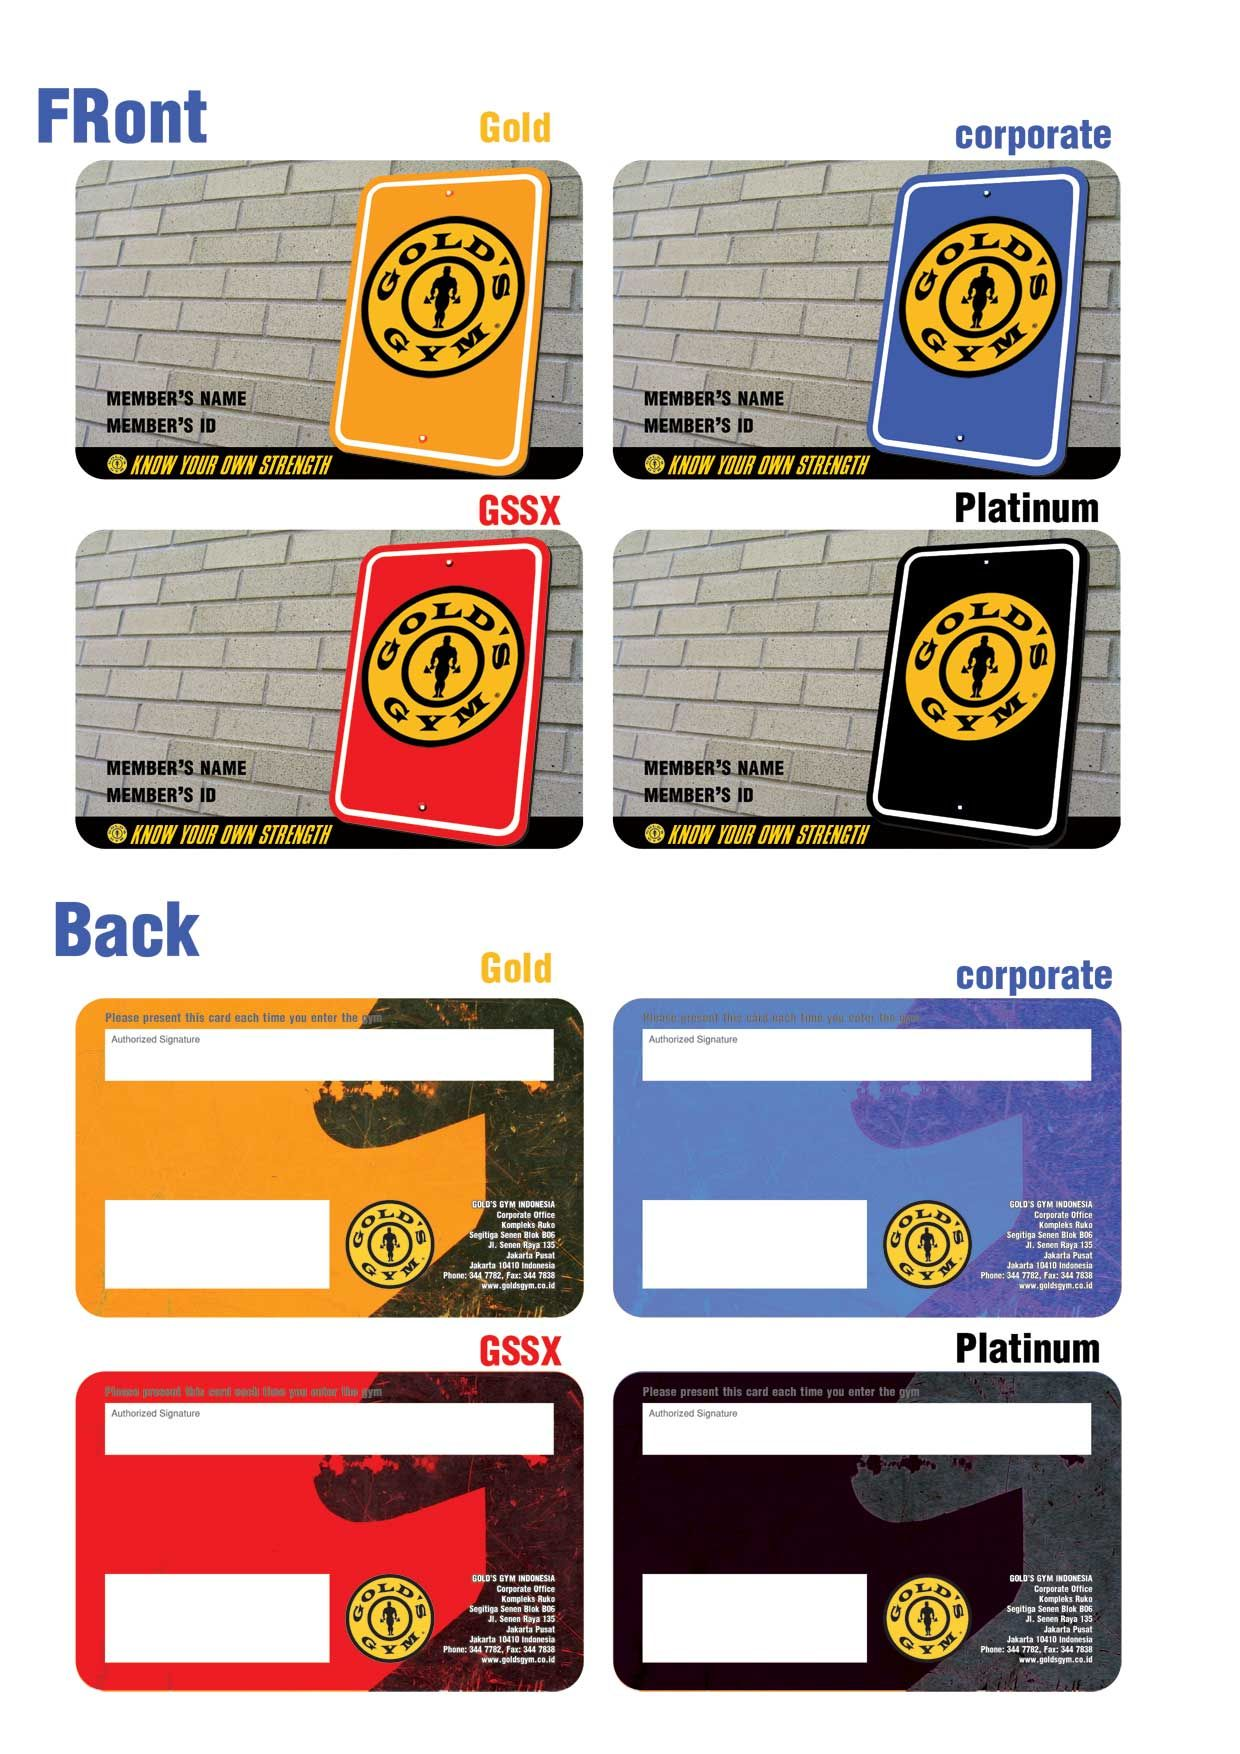 graphic regarding Printable Membership Cards referred to as Gold health and fitness center subscription card G I F T S Golds fitness center subscription